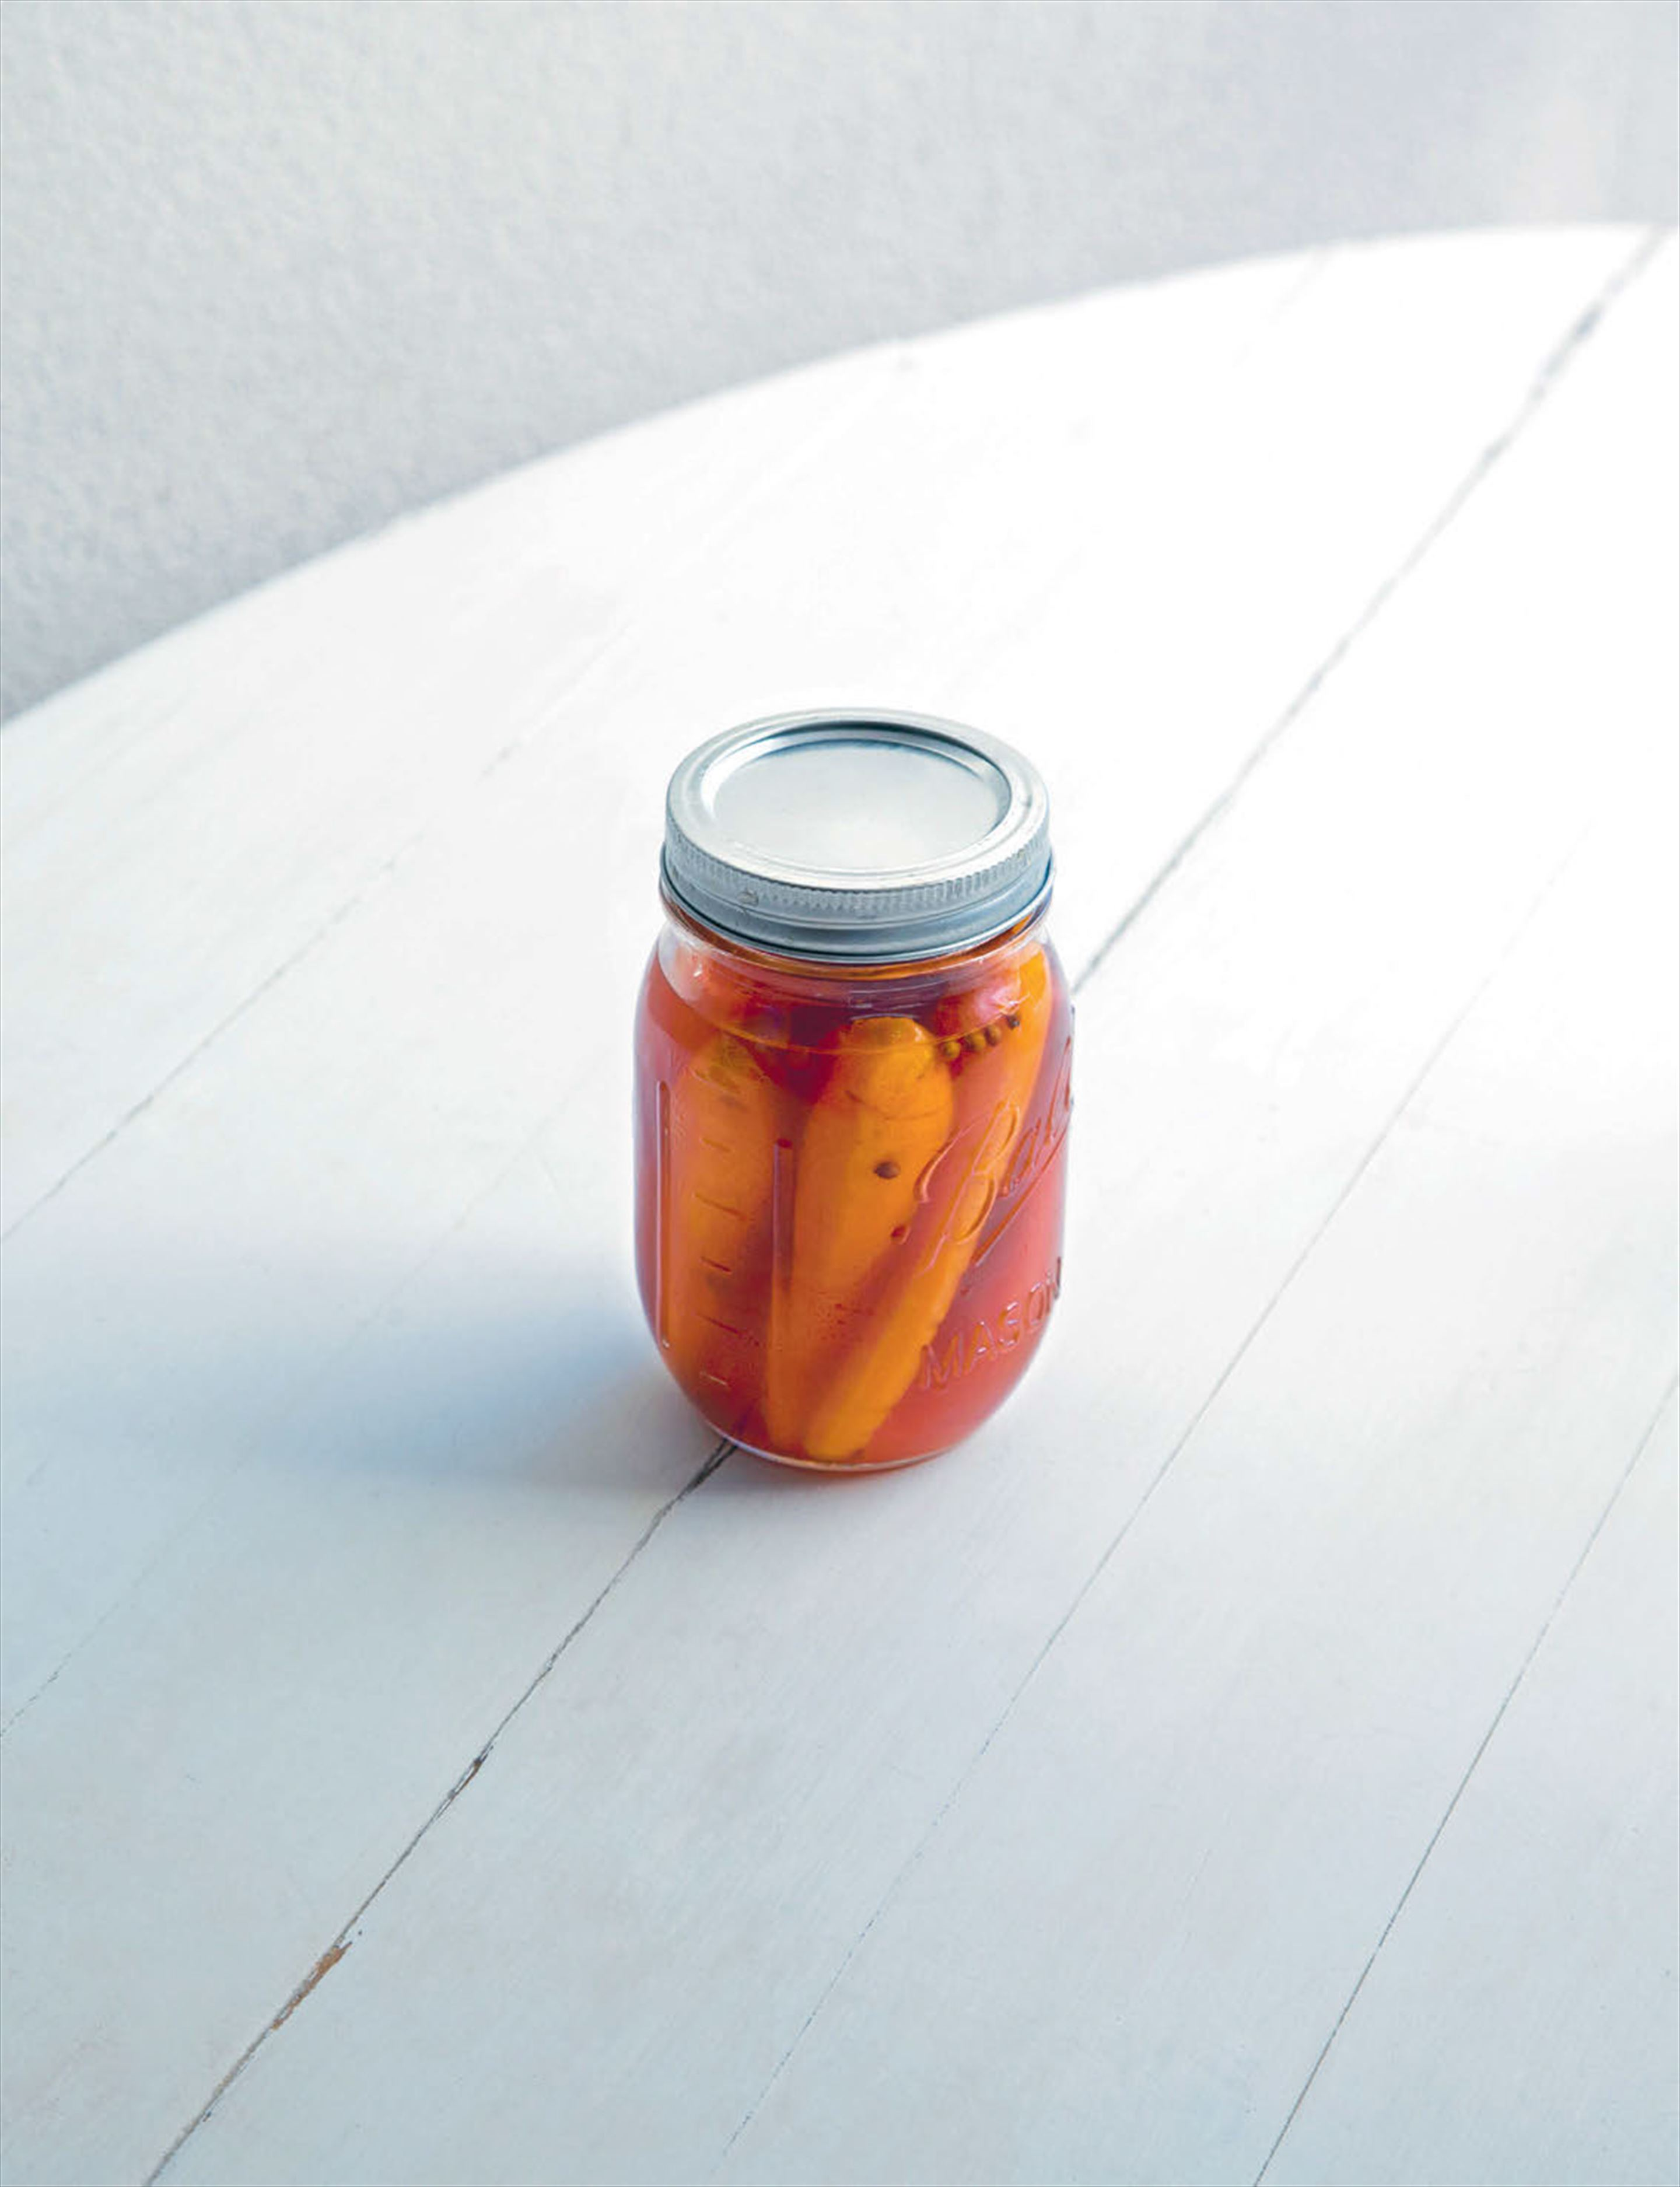 Hot sauce pickled carrots